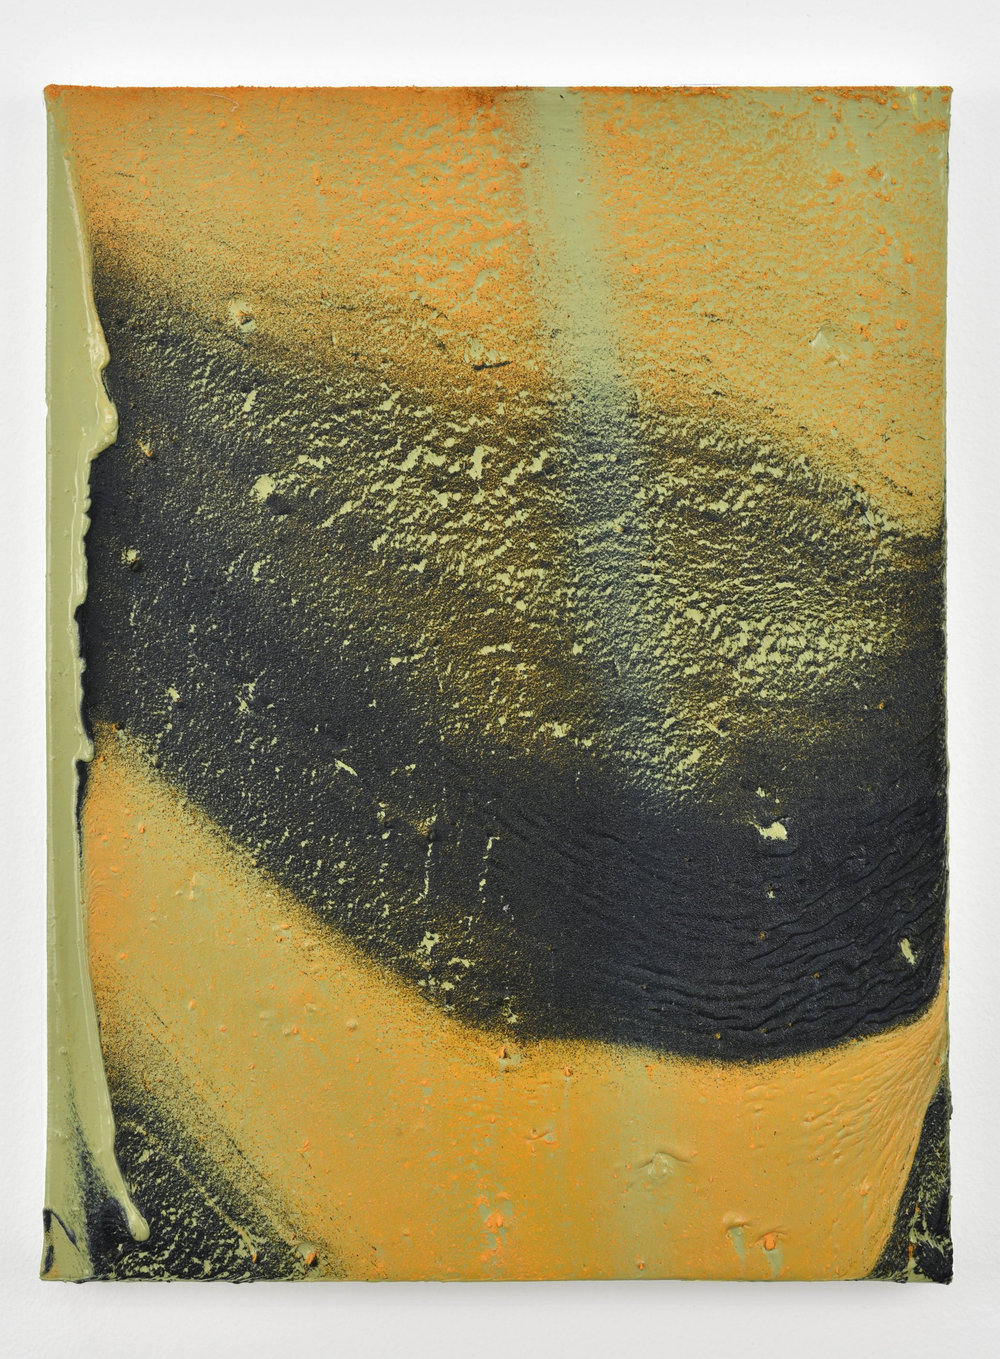 Thomas Fougeirol Collapsing Field, 2018 Oil and pigment on canvas 40 x 30 cm - 15 3/4 x 11 3/4 in